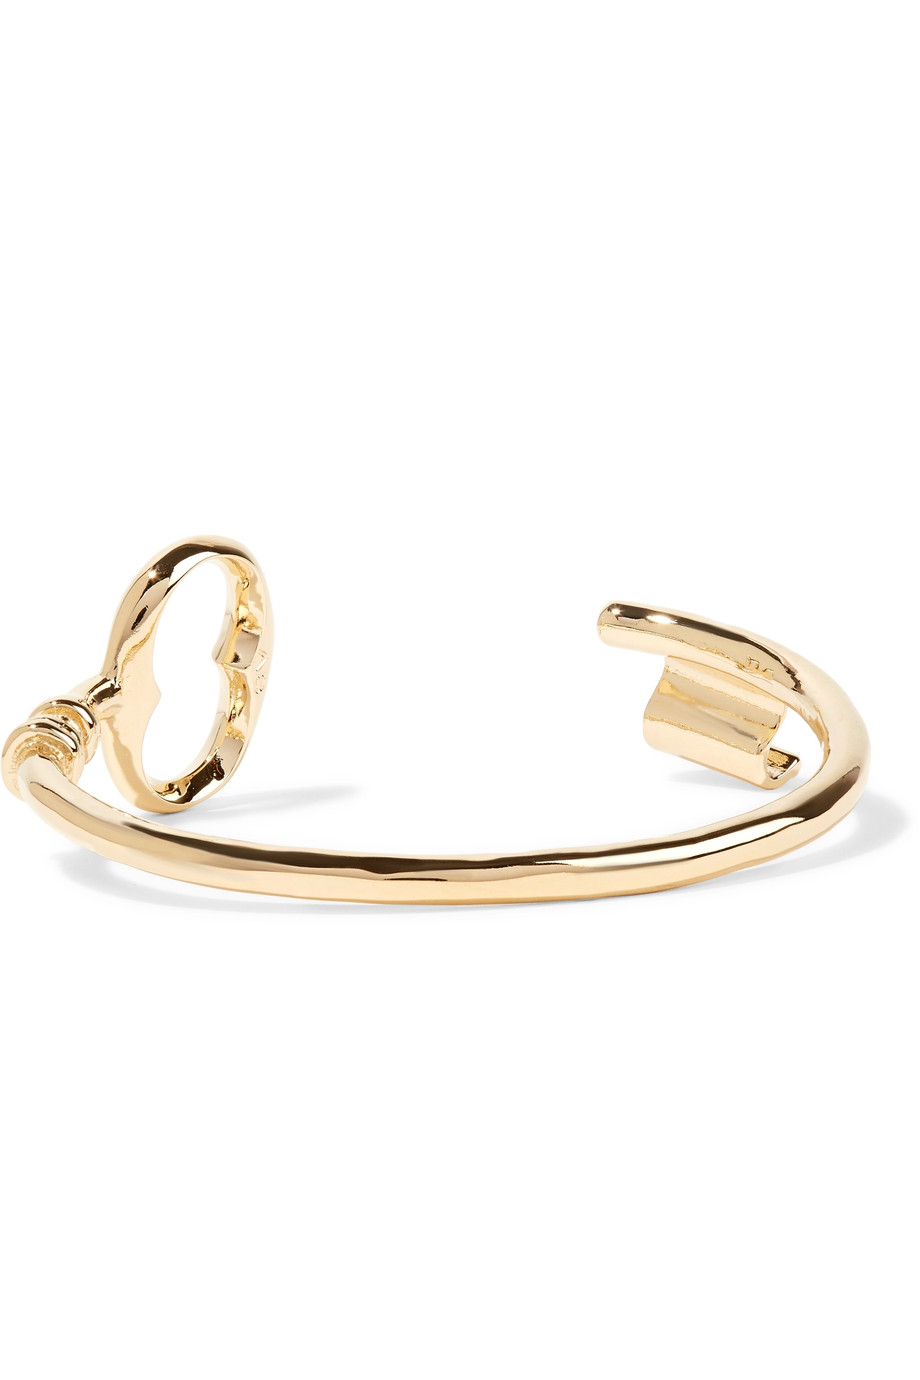 Aurélie Bidermann   Gold Plated Bangle , £114 -  sweet and simple